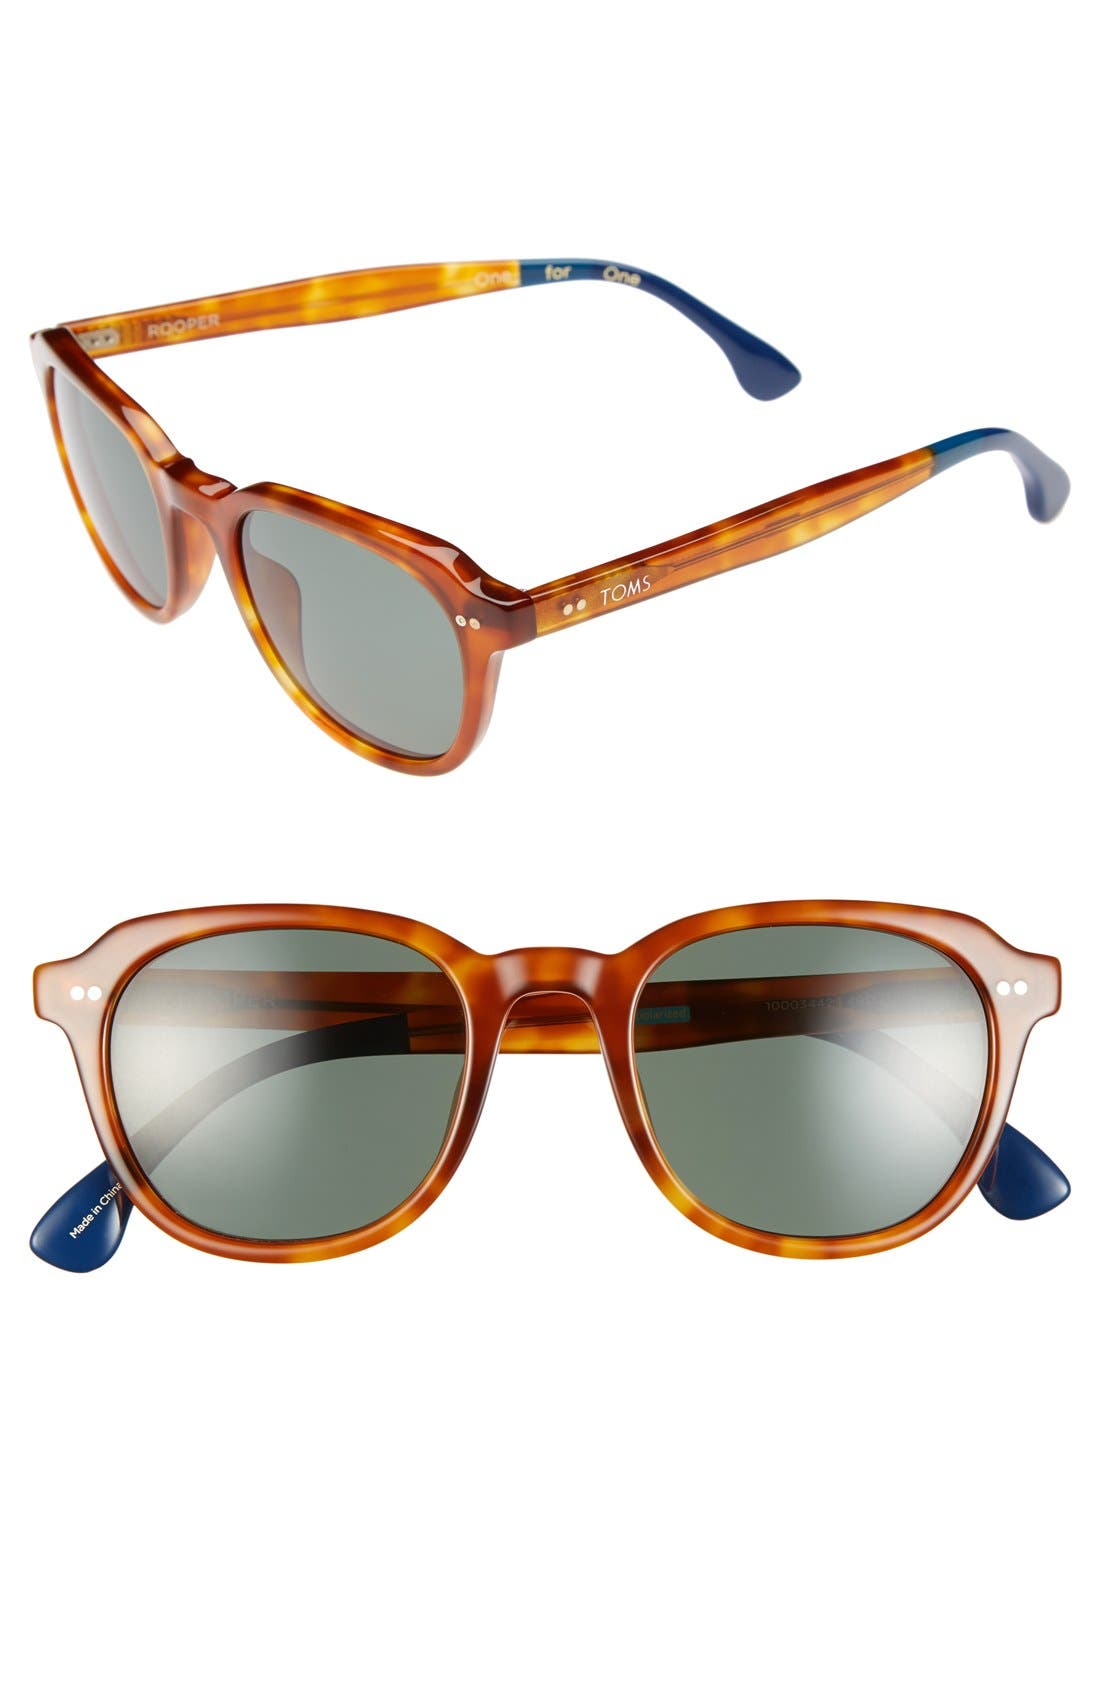 Main Image - TOMS 'Rooper' 49mm Polarized Sunglasses